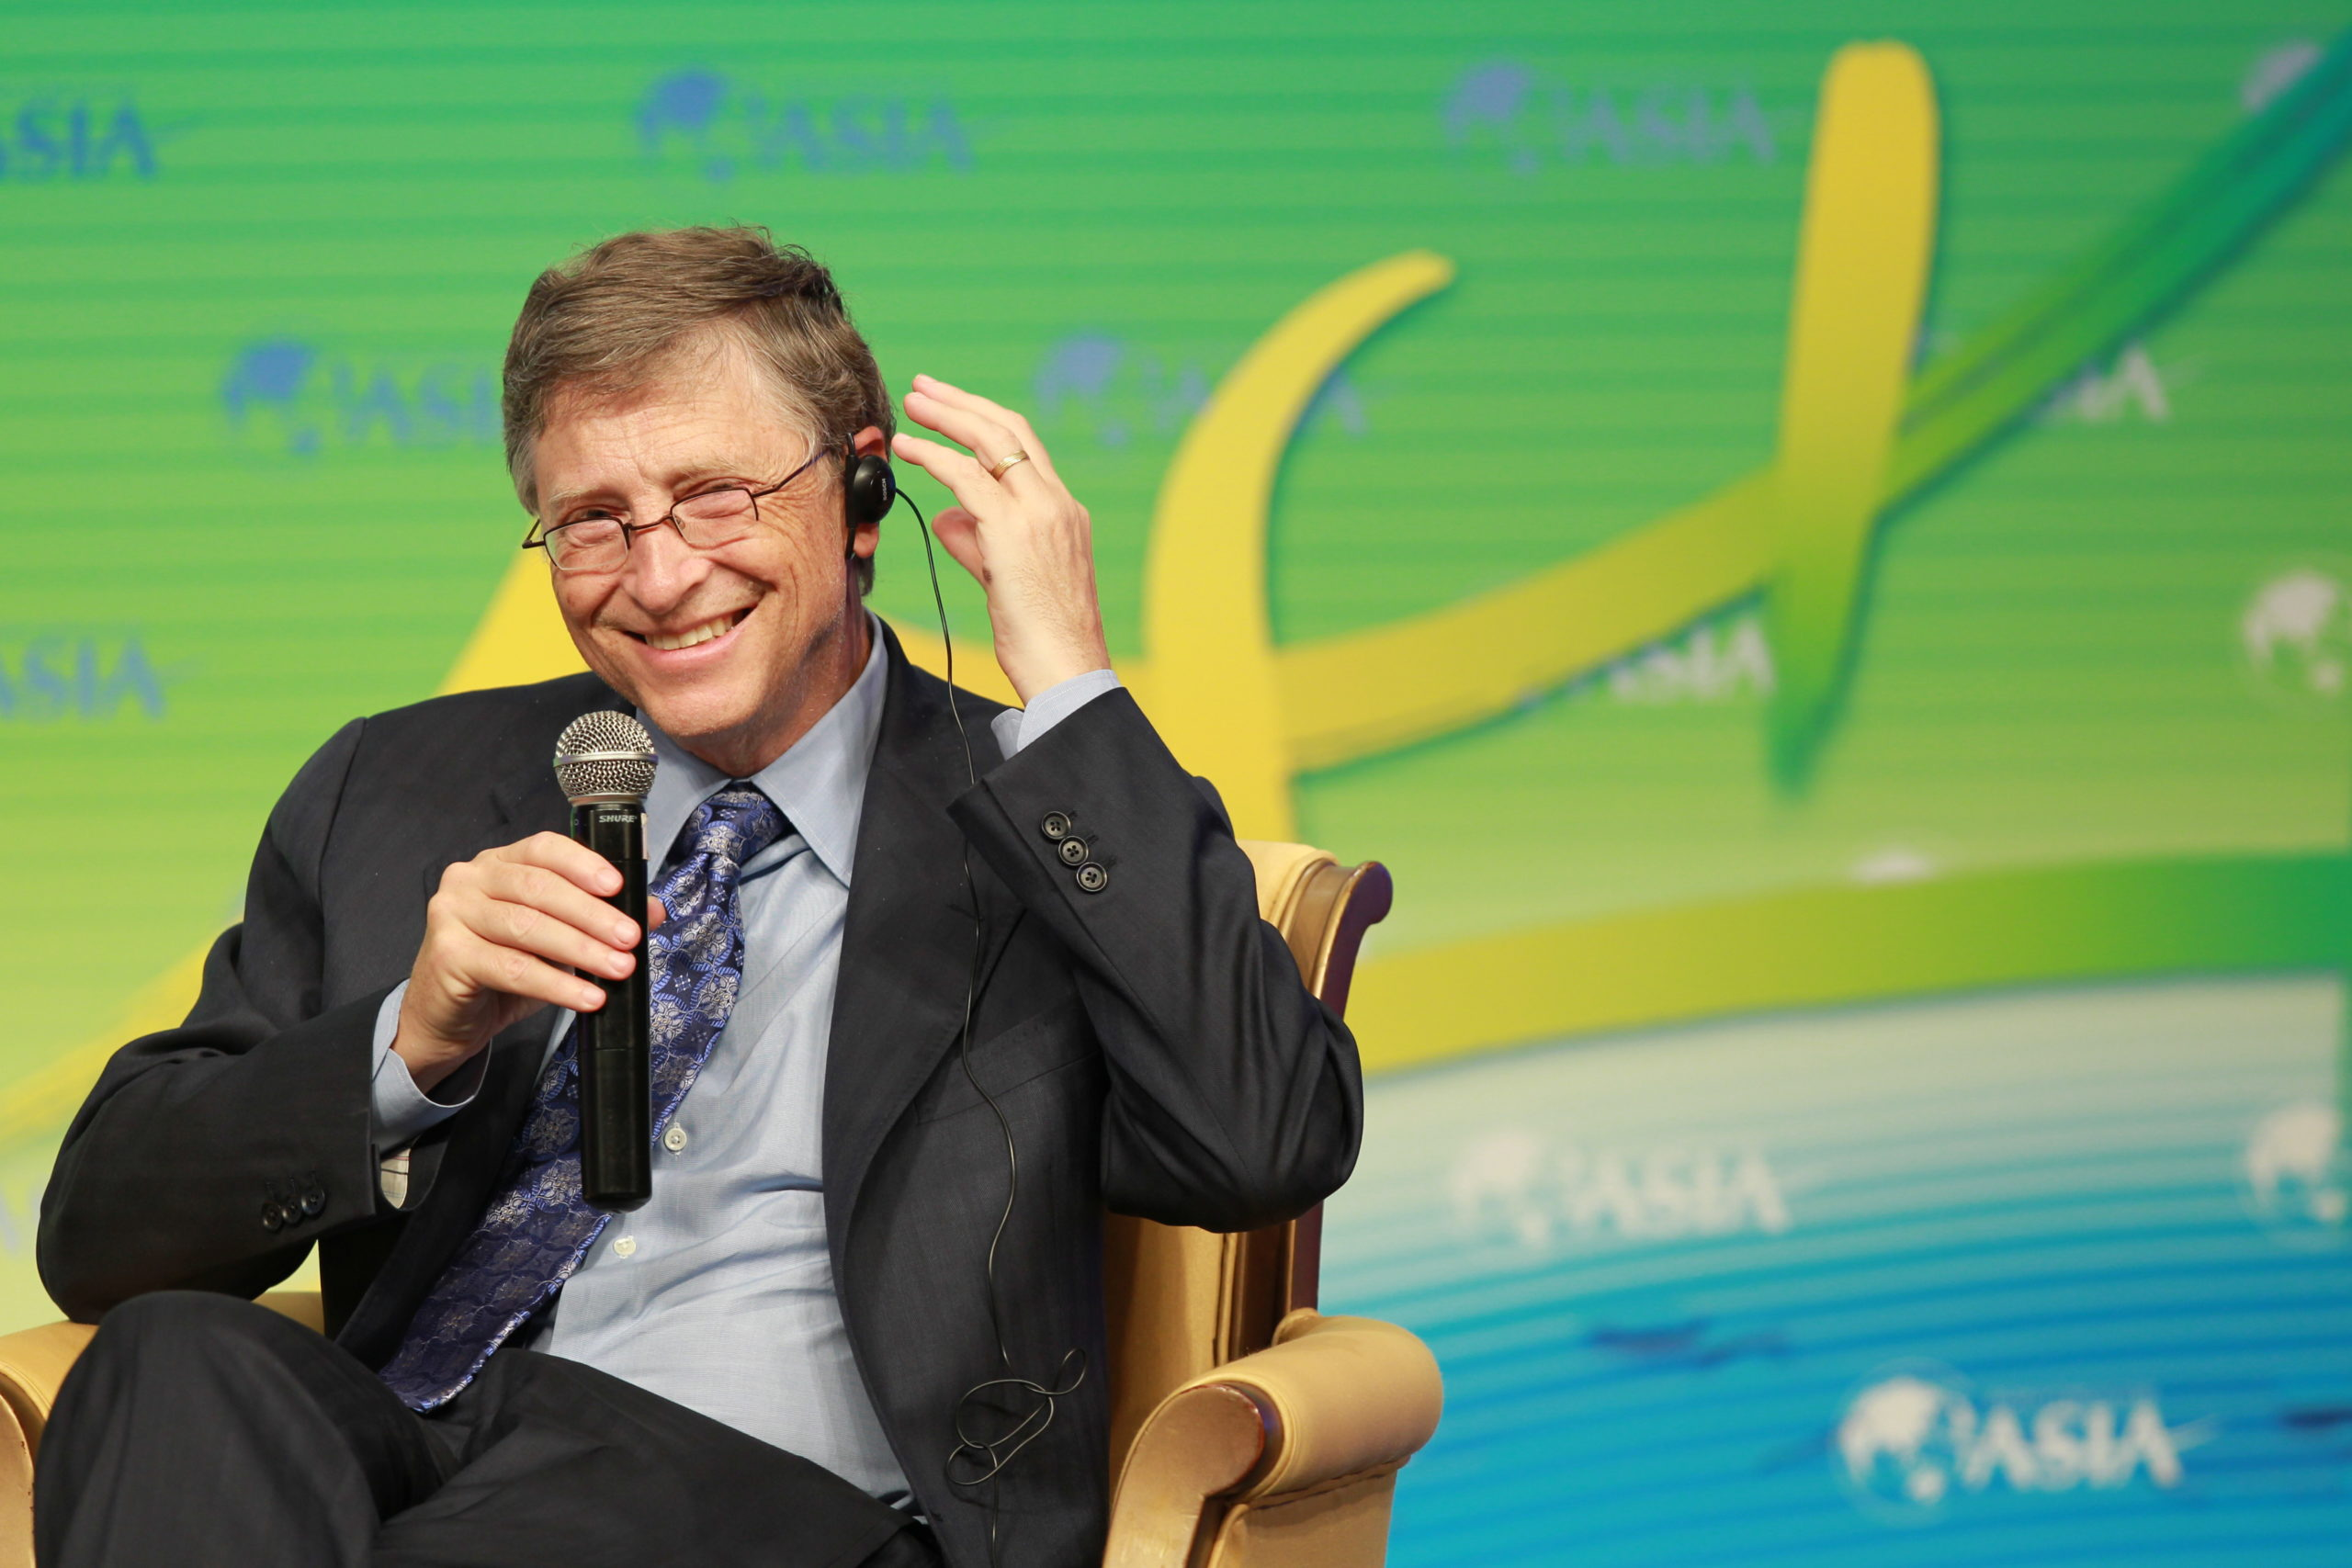 Bill Gates, Co-Chair of the Bill and Melinda Gates Foundation, talks at a sub-forum during the 2013 Boao Forum for Asia in Boao town, Qionghai city, south Chinas Hainan province, 6 April 2013. — Stock Image